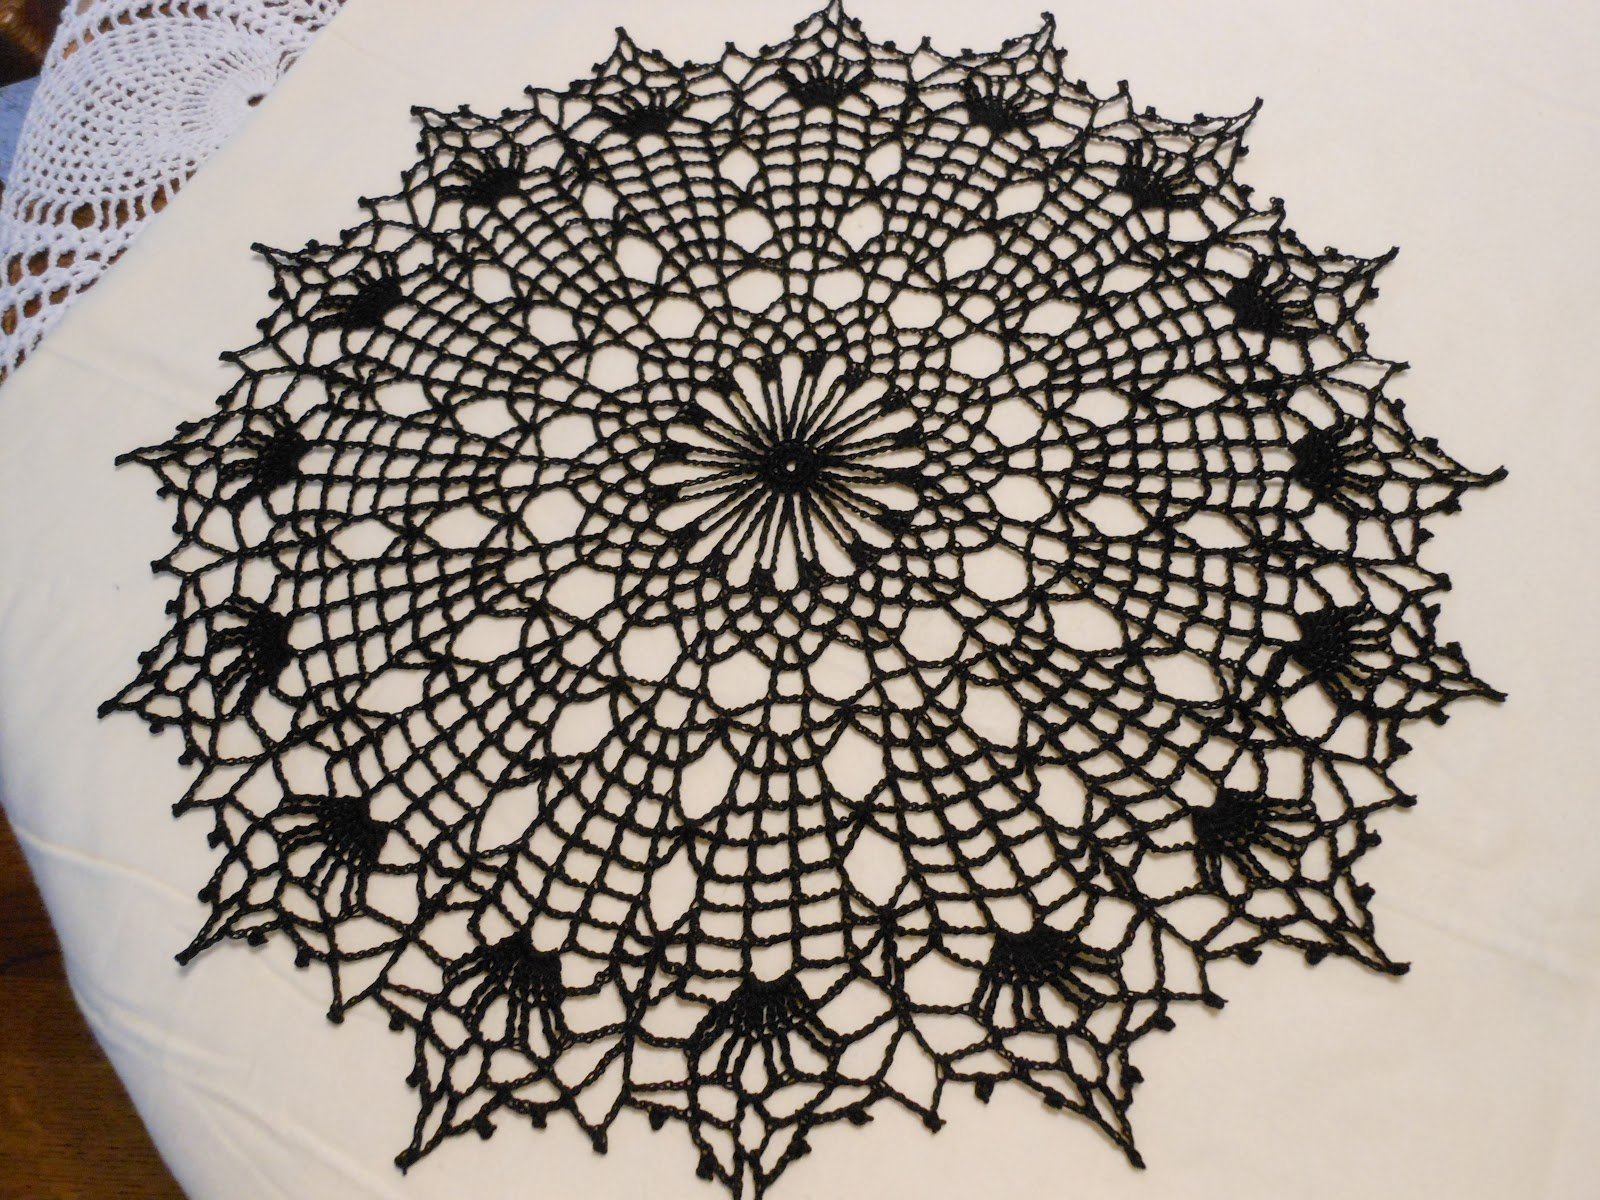 By hooks 4u spider webs and maybe a candle or two by hooks 4u crocheting bankloansurffo Images